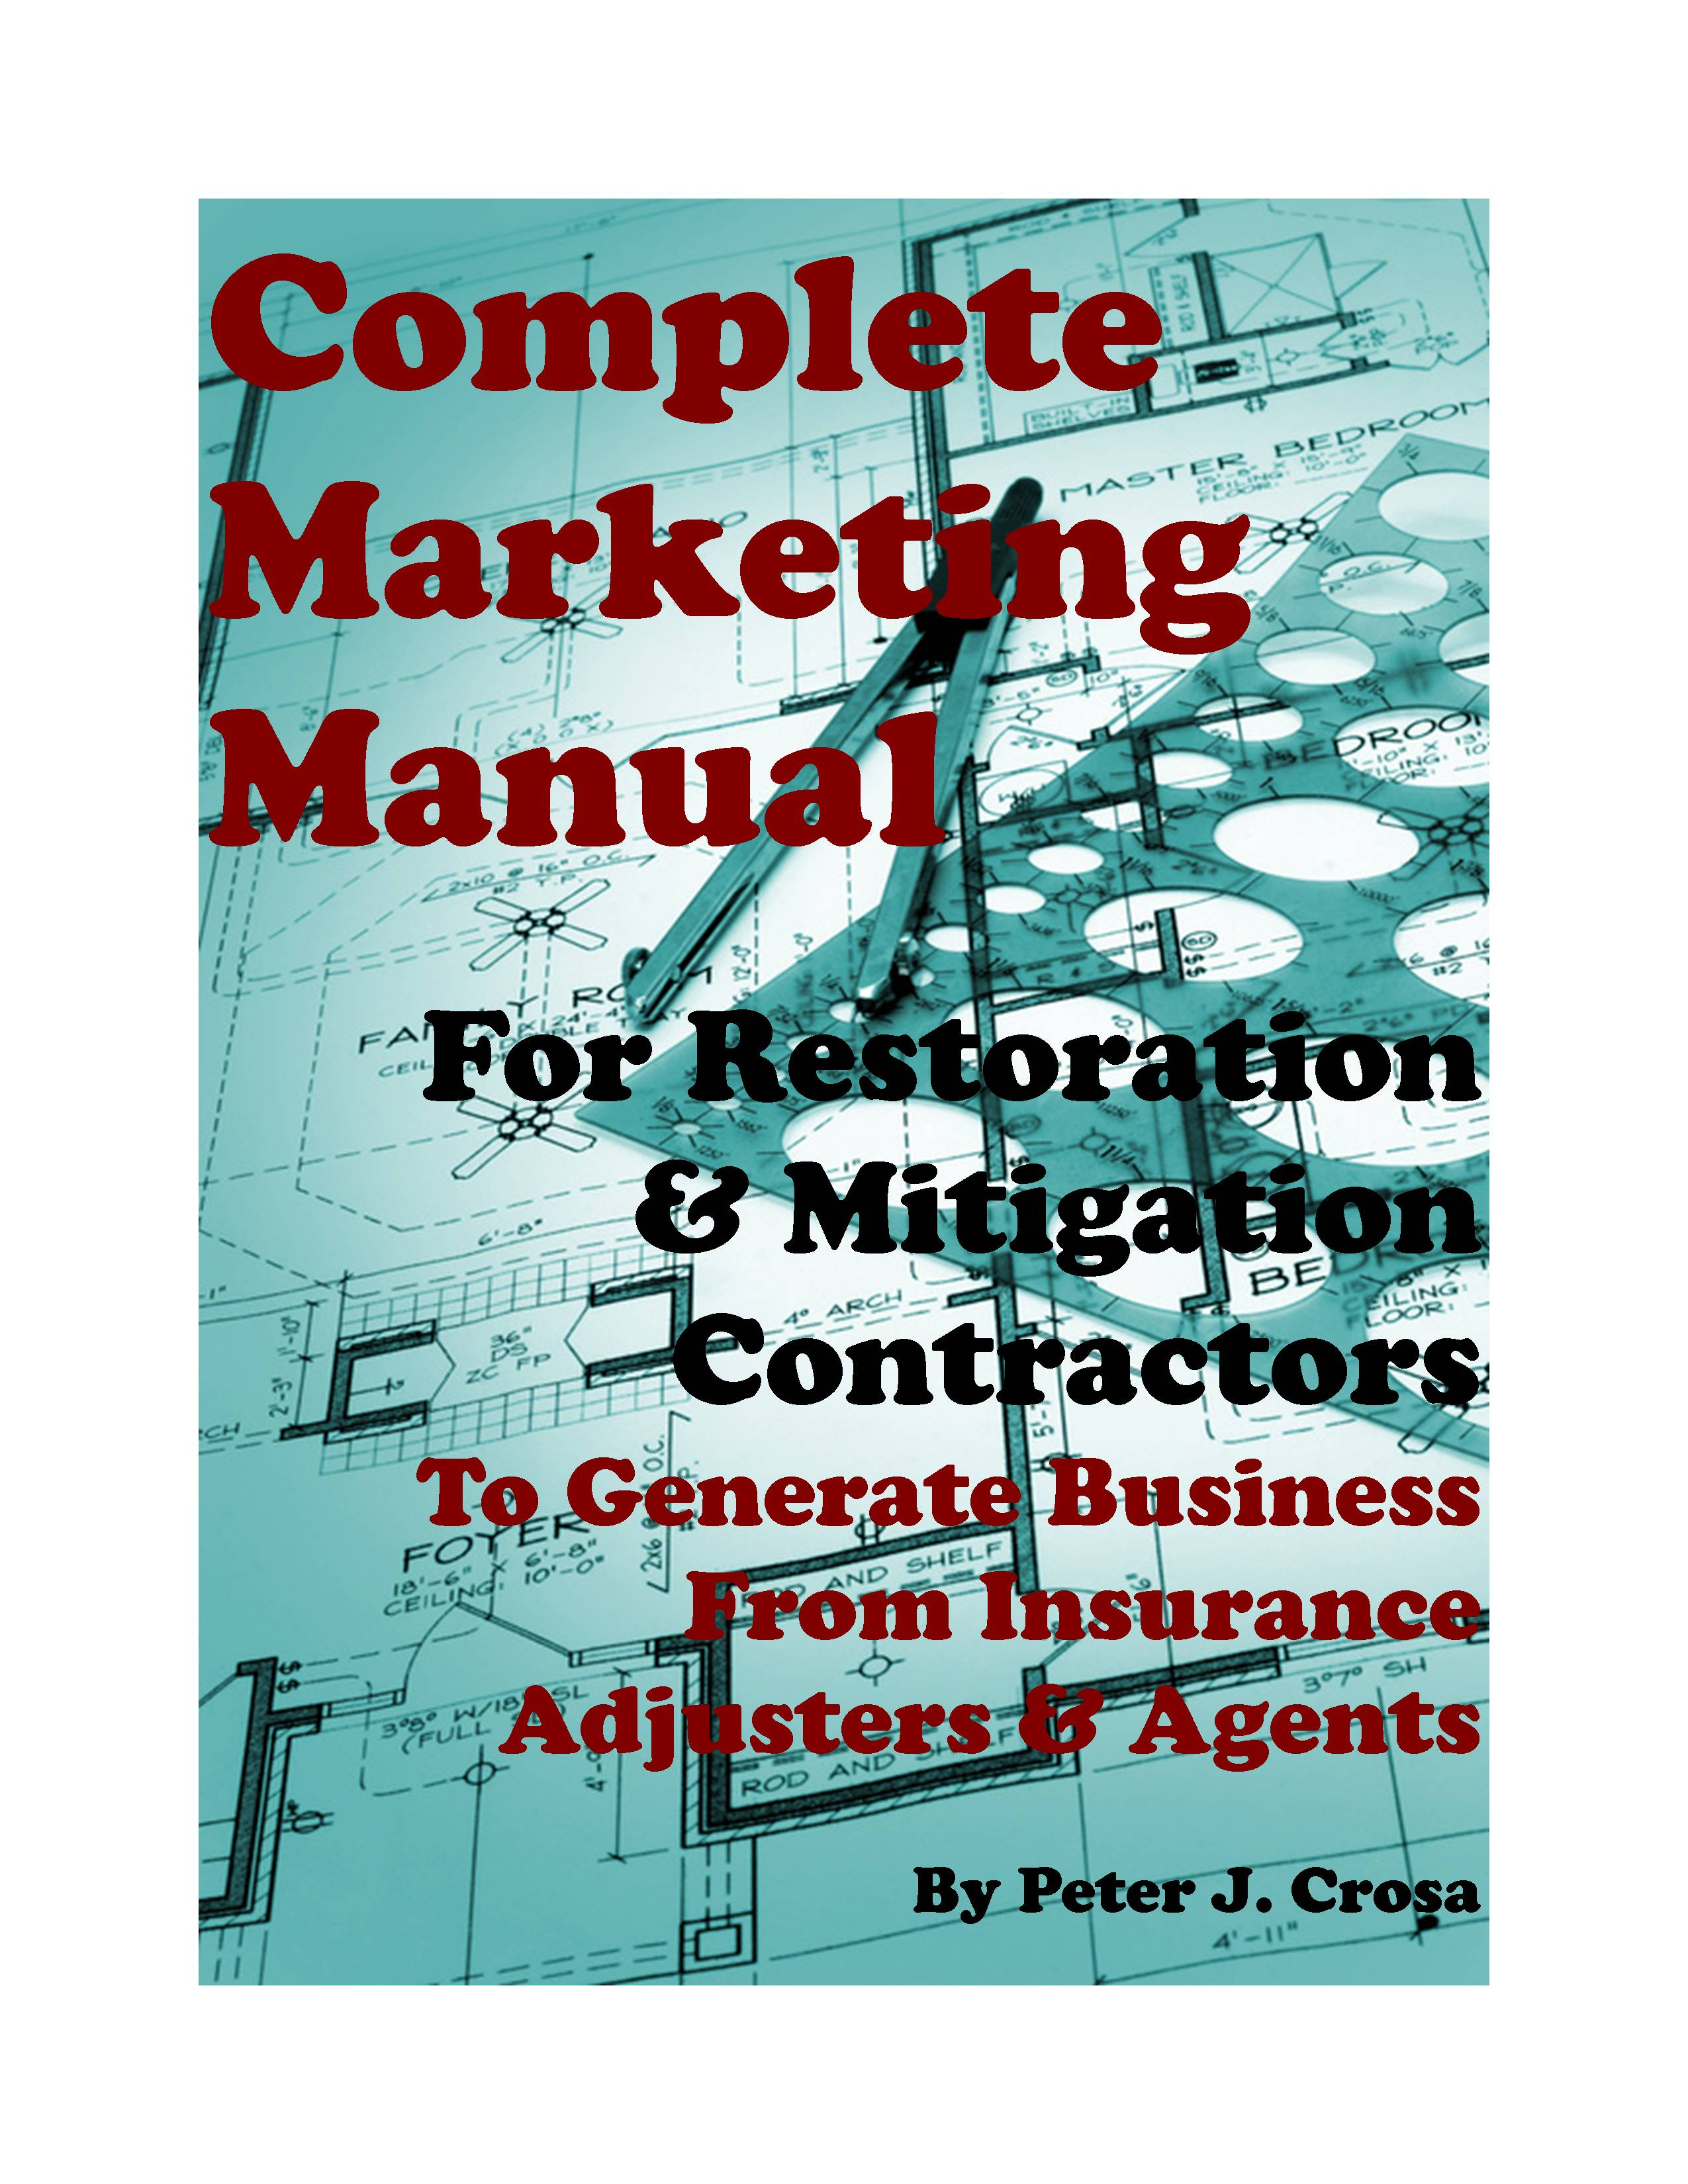 How to complete marketing plan